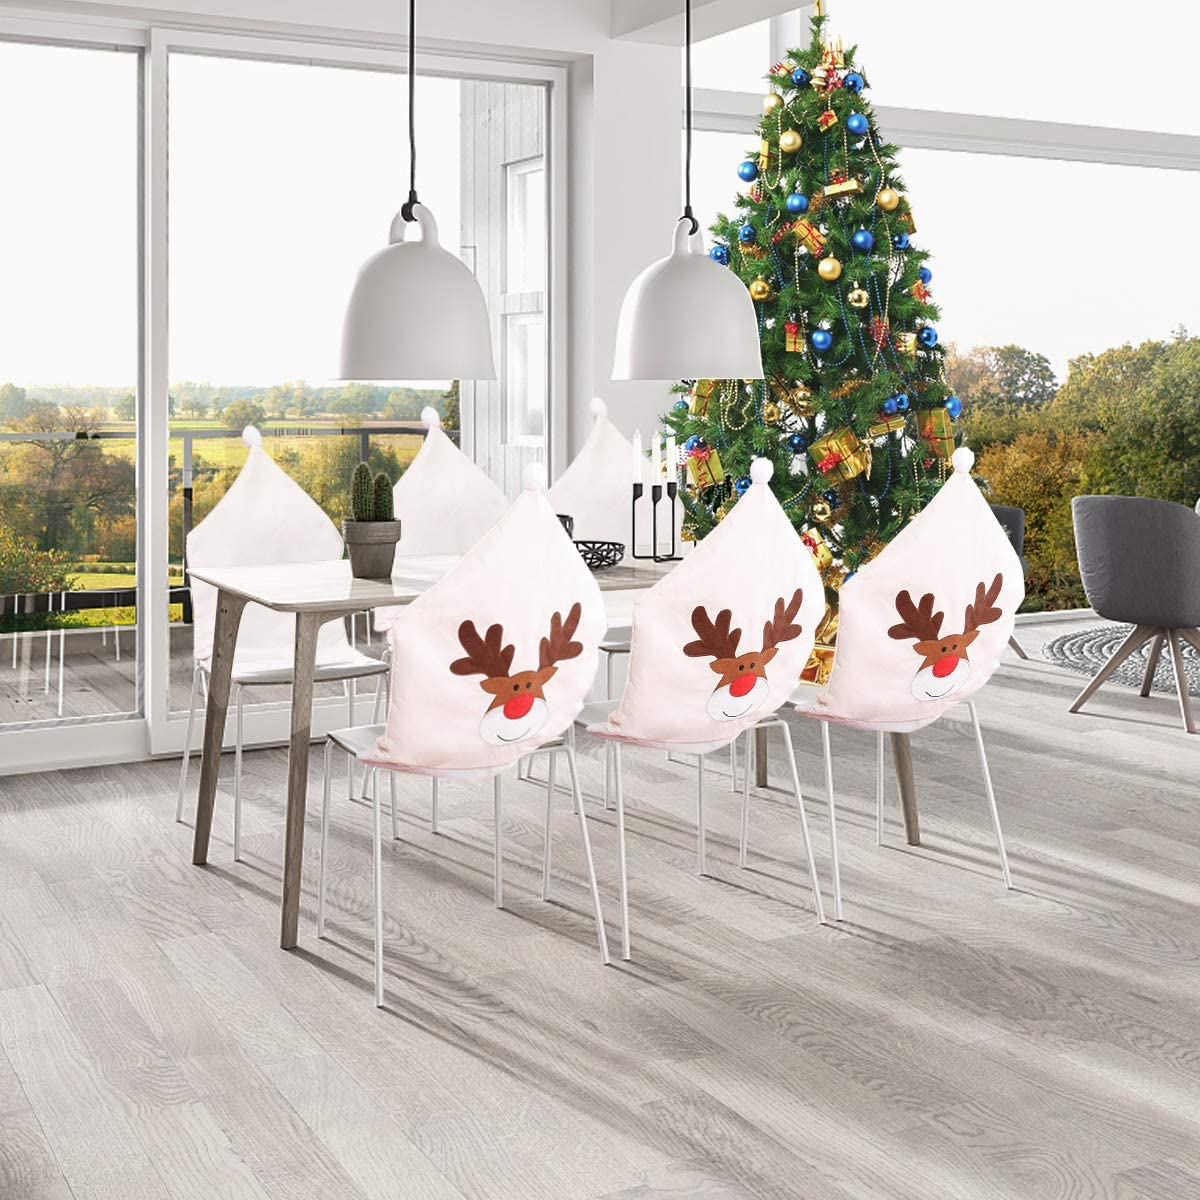 Swiftion 2020 Christmas Ornament Chair Covers Set of 6, Deer Xmas Decor Dining Chair Slipcovers, Office Santa Claus Hat Design Chair Back Cover